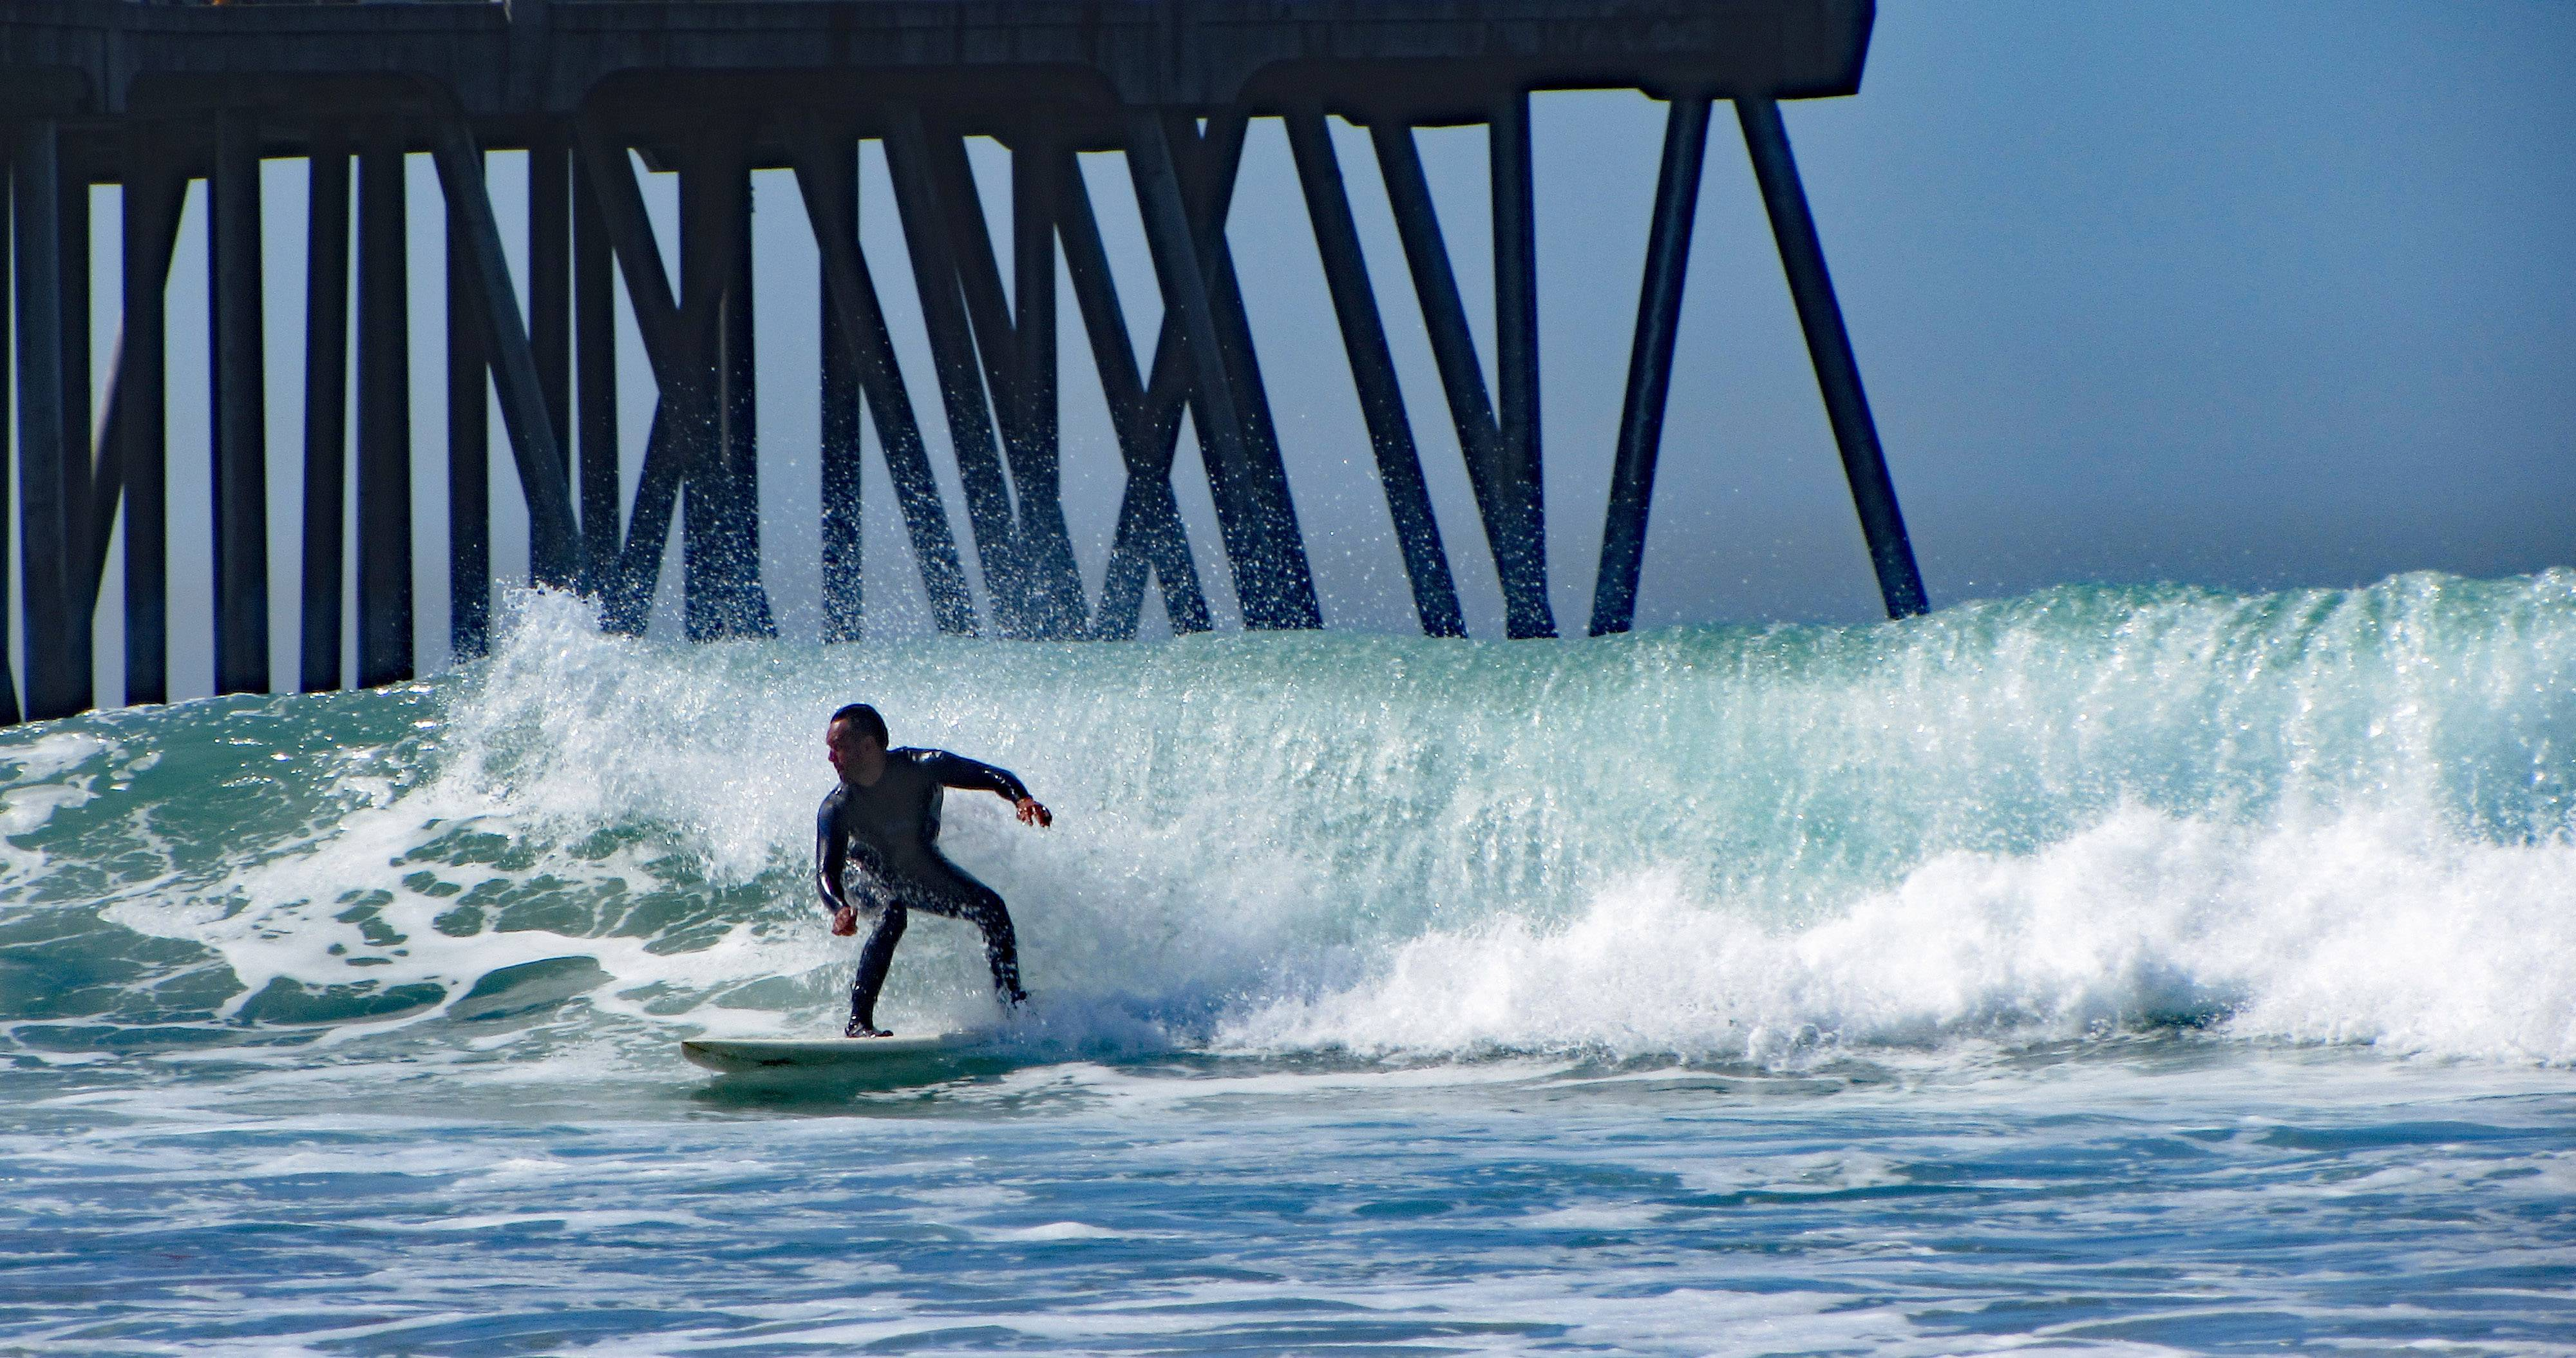 A surfer shoots past the pier on a sweeping wave at Huntington Beach, California on March 26, 2015.